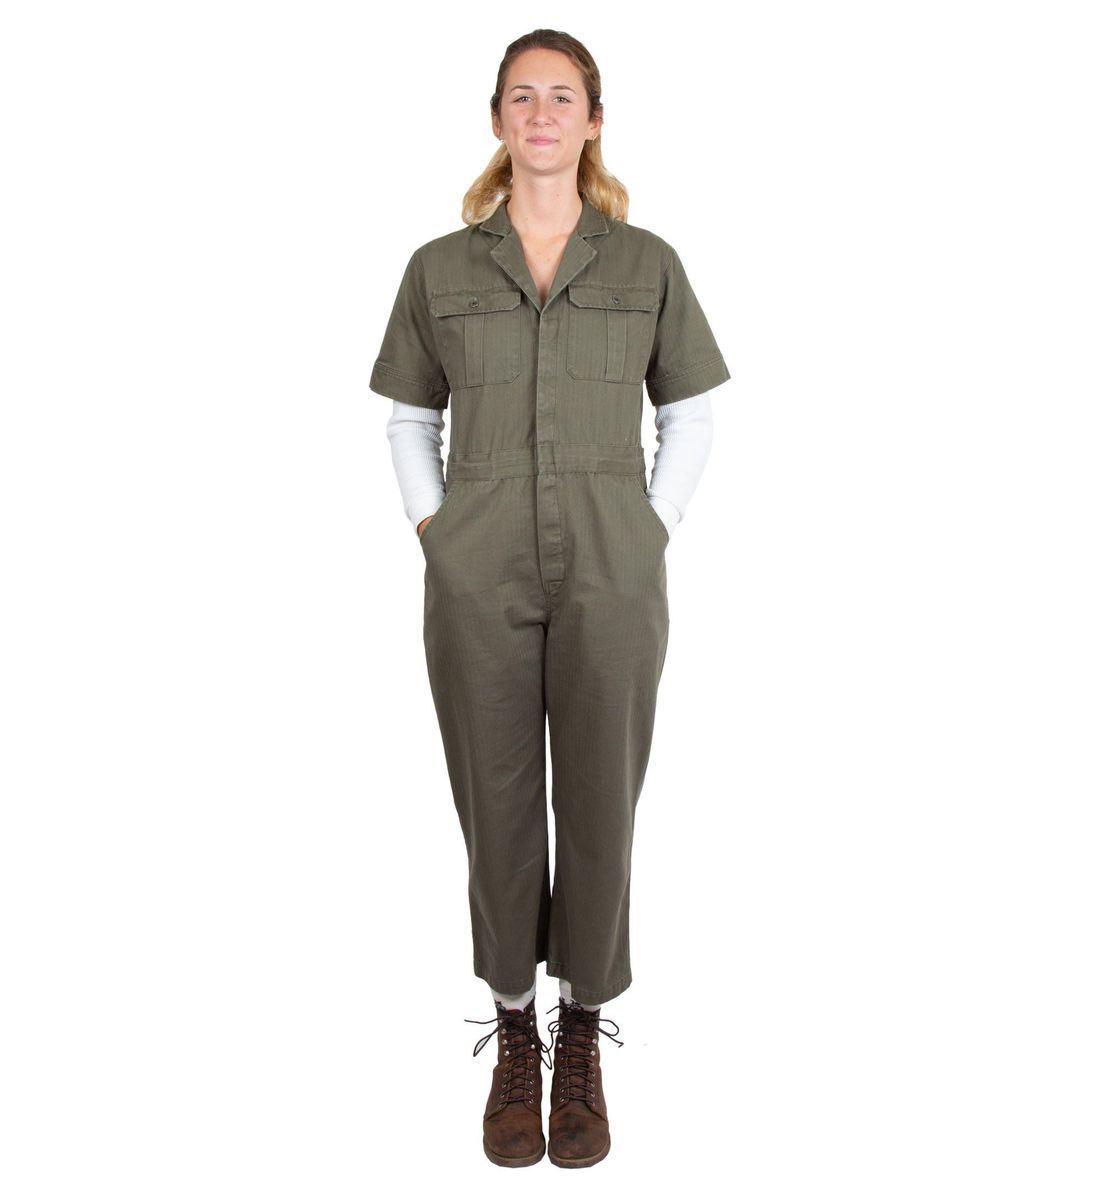 Carhartt Womens Smithville Coverall Work Utility Coveralls